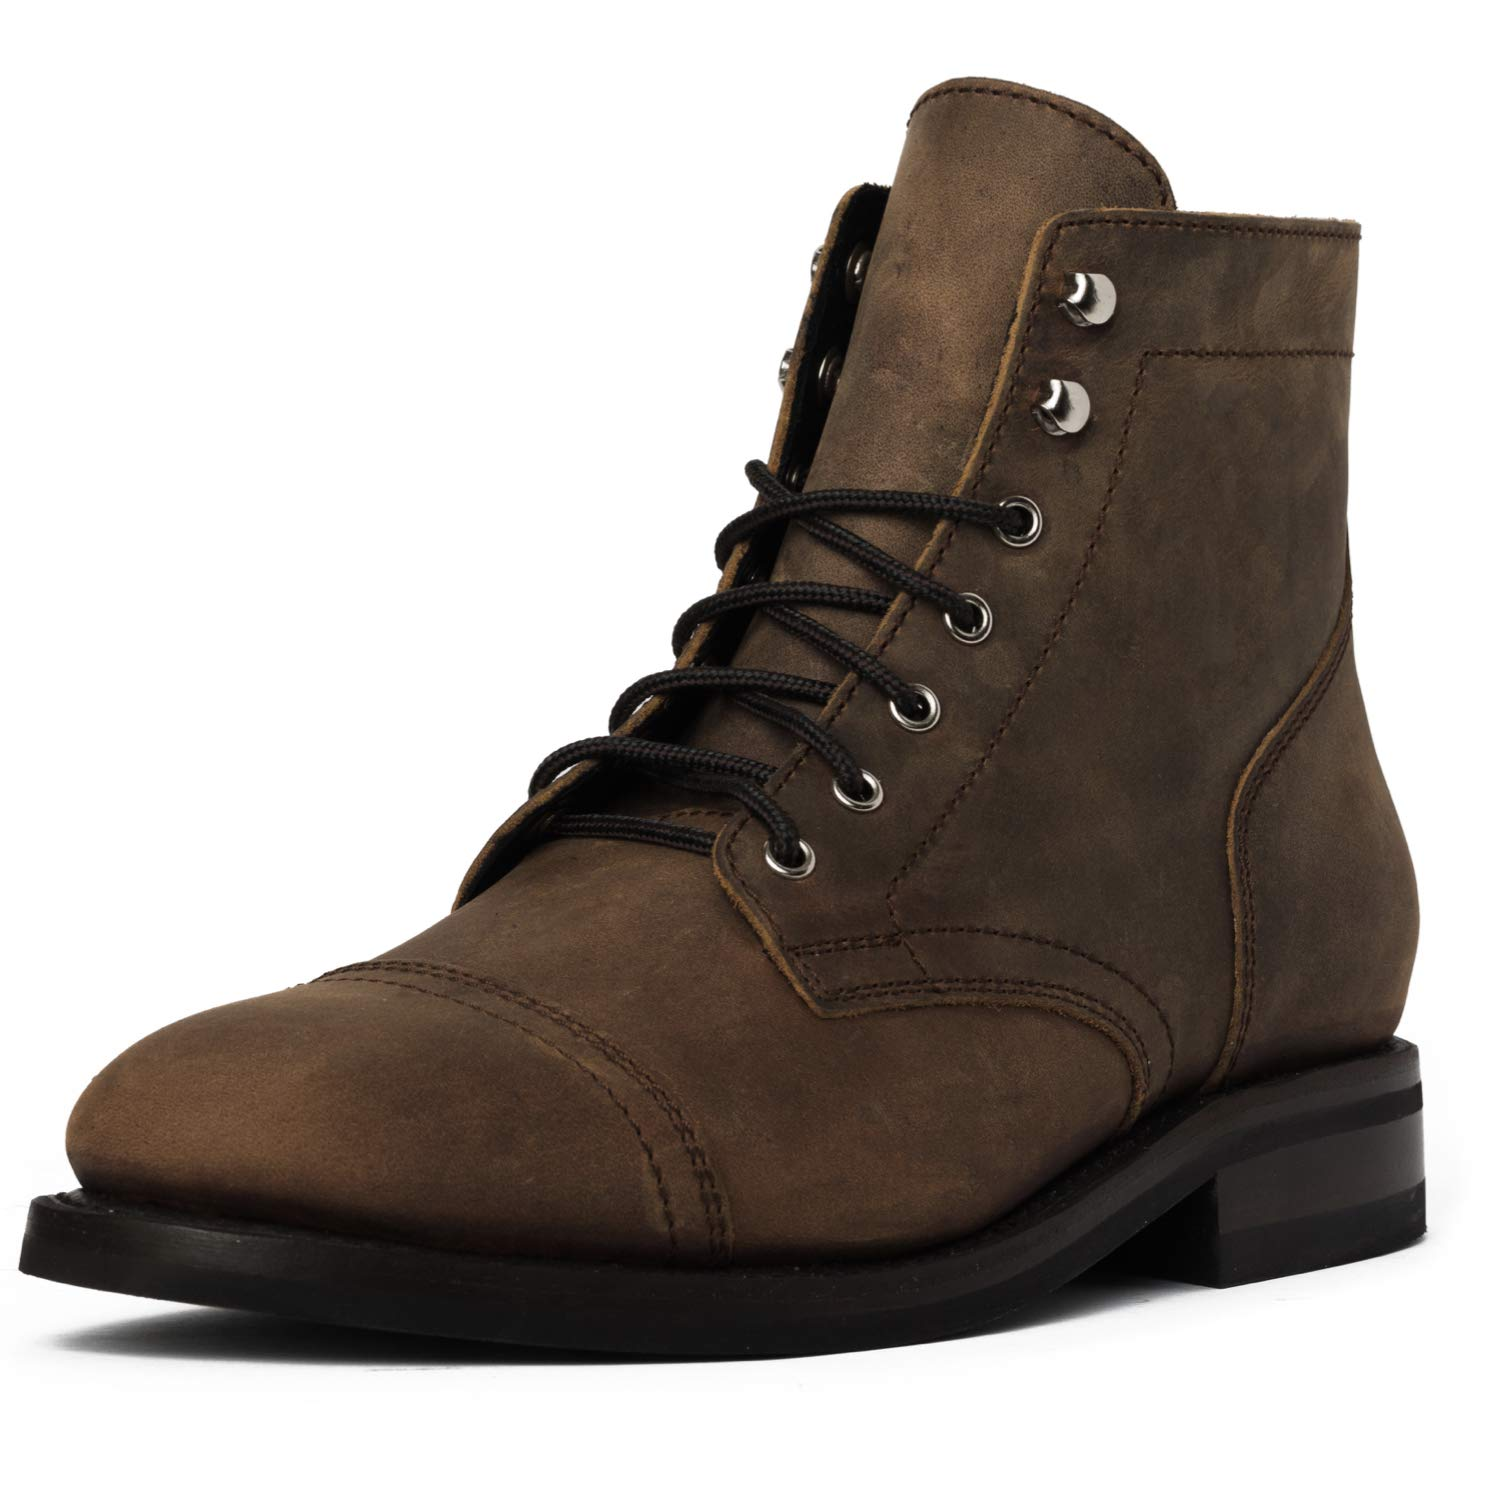 Thursday Boot Company Men's Rugged & Resilient Captain 6'' Lace-up Boot, Burnt Copper